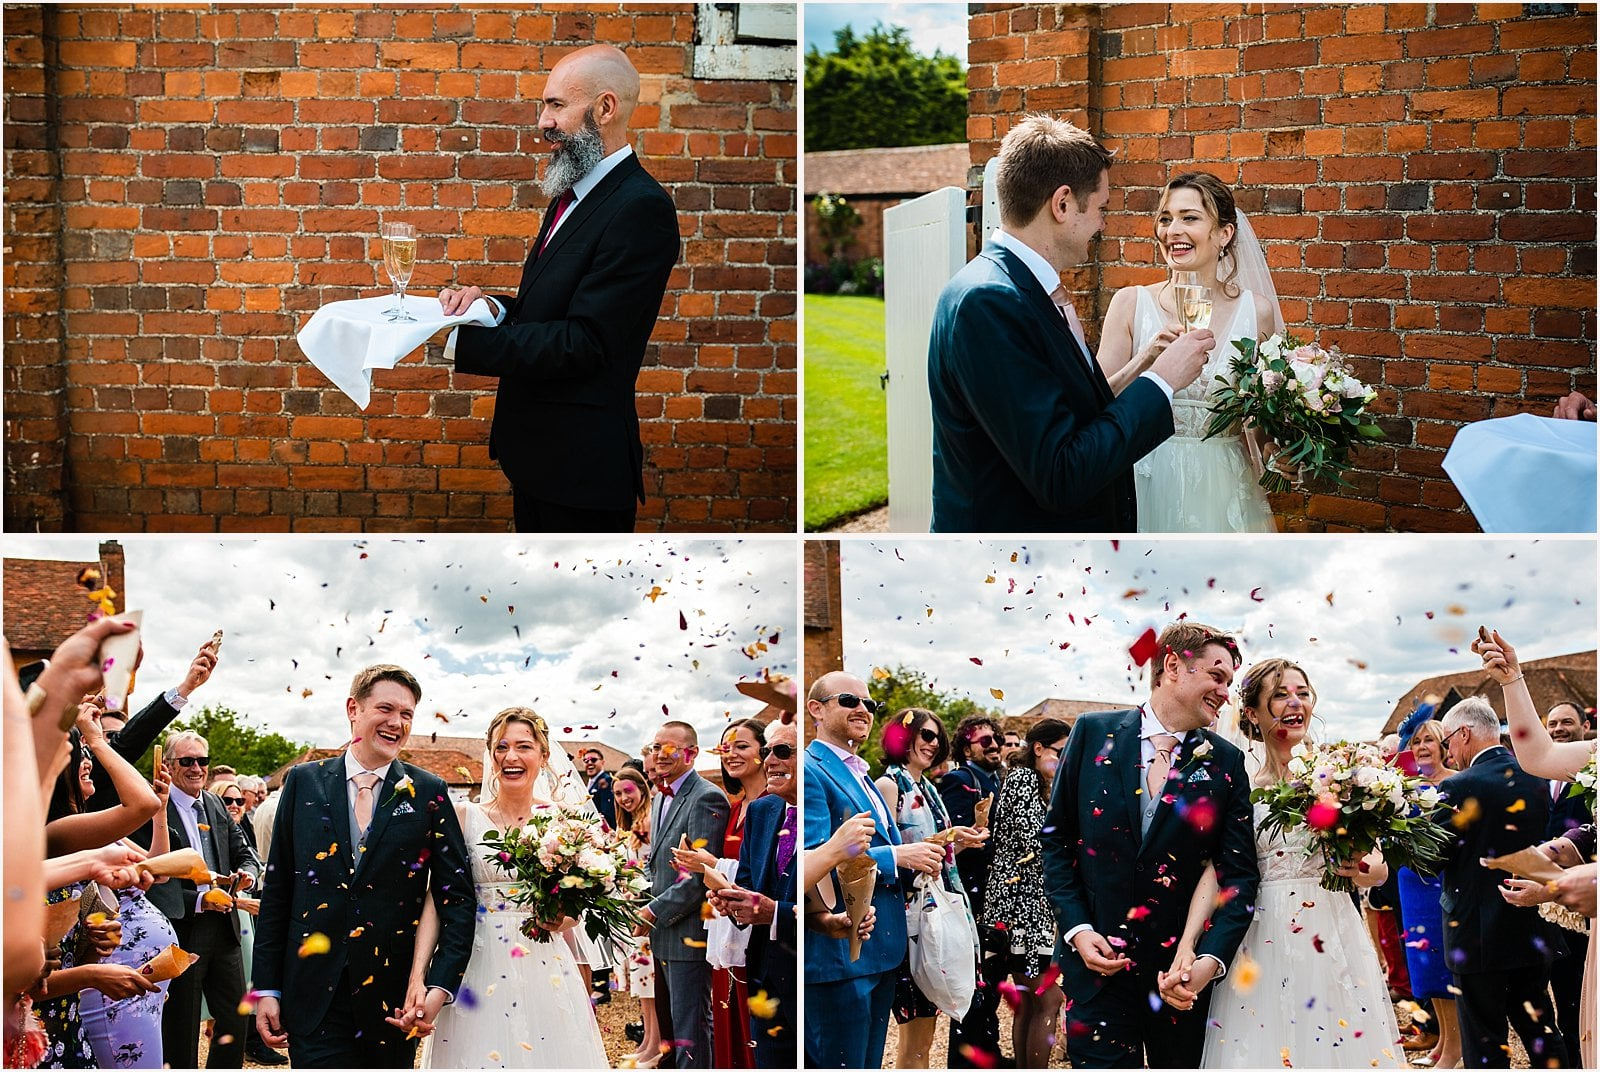 Beautiful Lillibrooke Manor Wedding - Ksenia & Iain 26